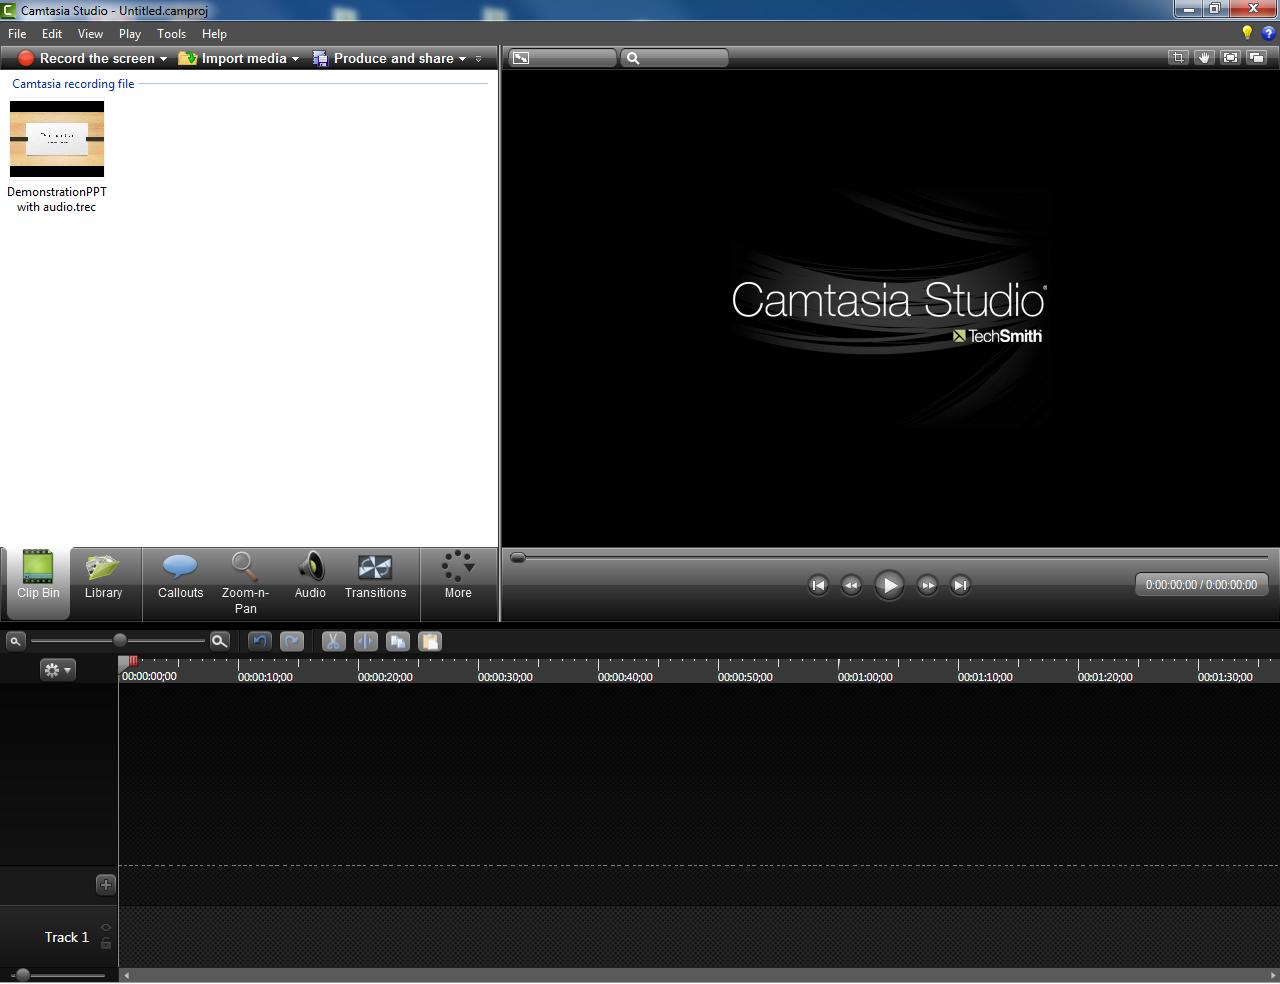 10. It is recommended that you return to your Camtasia screen (which should still be open) and save your project file.